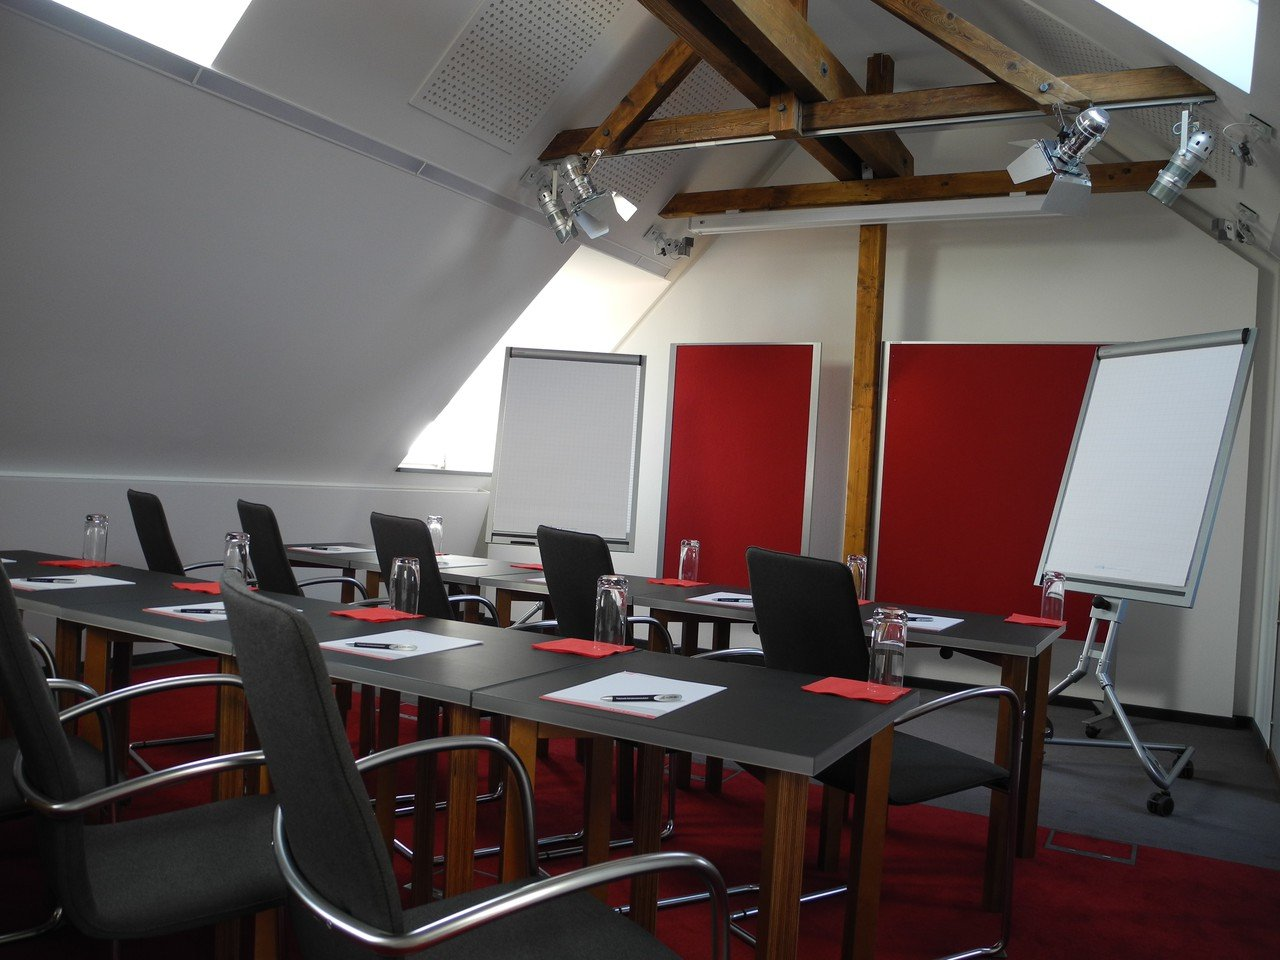 Leipzig training rooms Meeting room Seminarcentre Leipzig - Room Wissensfluss image 0